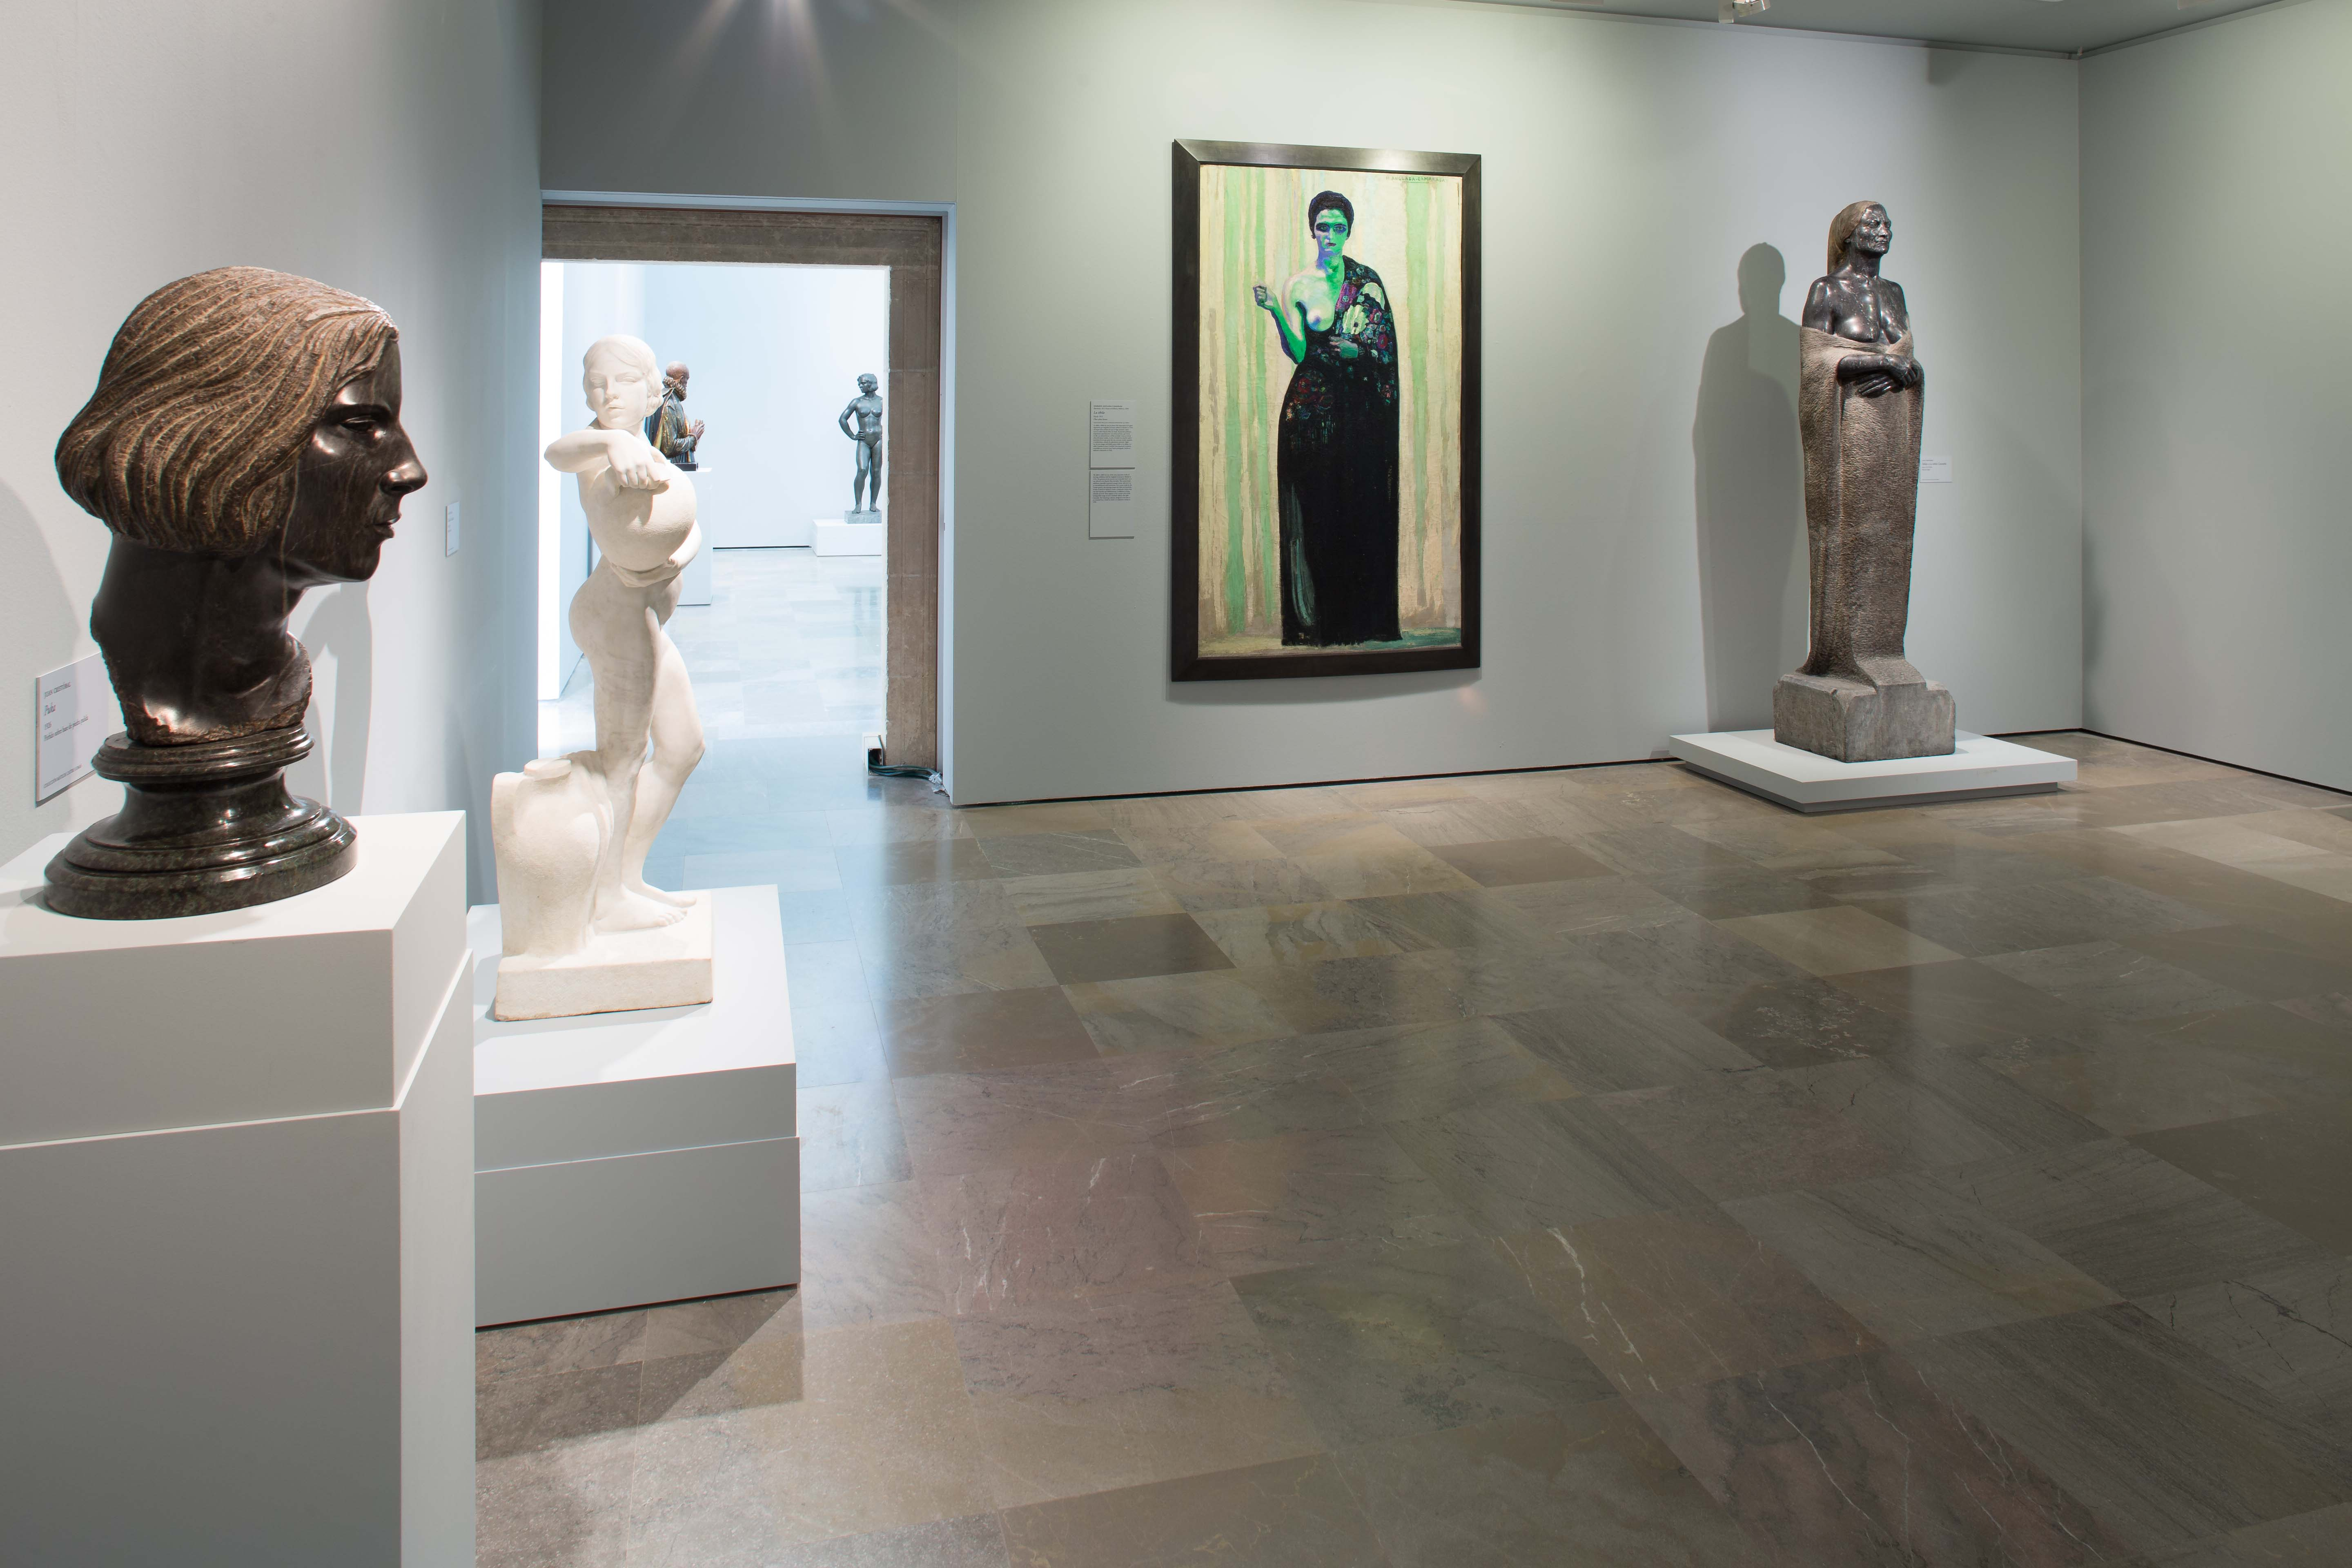 The Alhambra is organizing free guided visits to the exhibition about the sculptor Juan Cristóbal